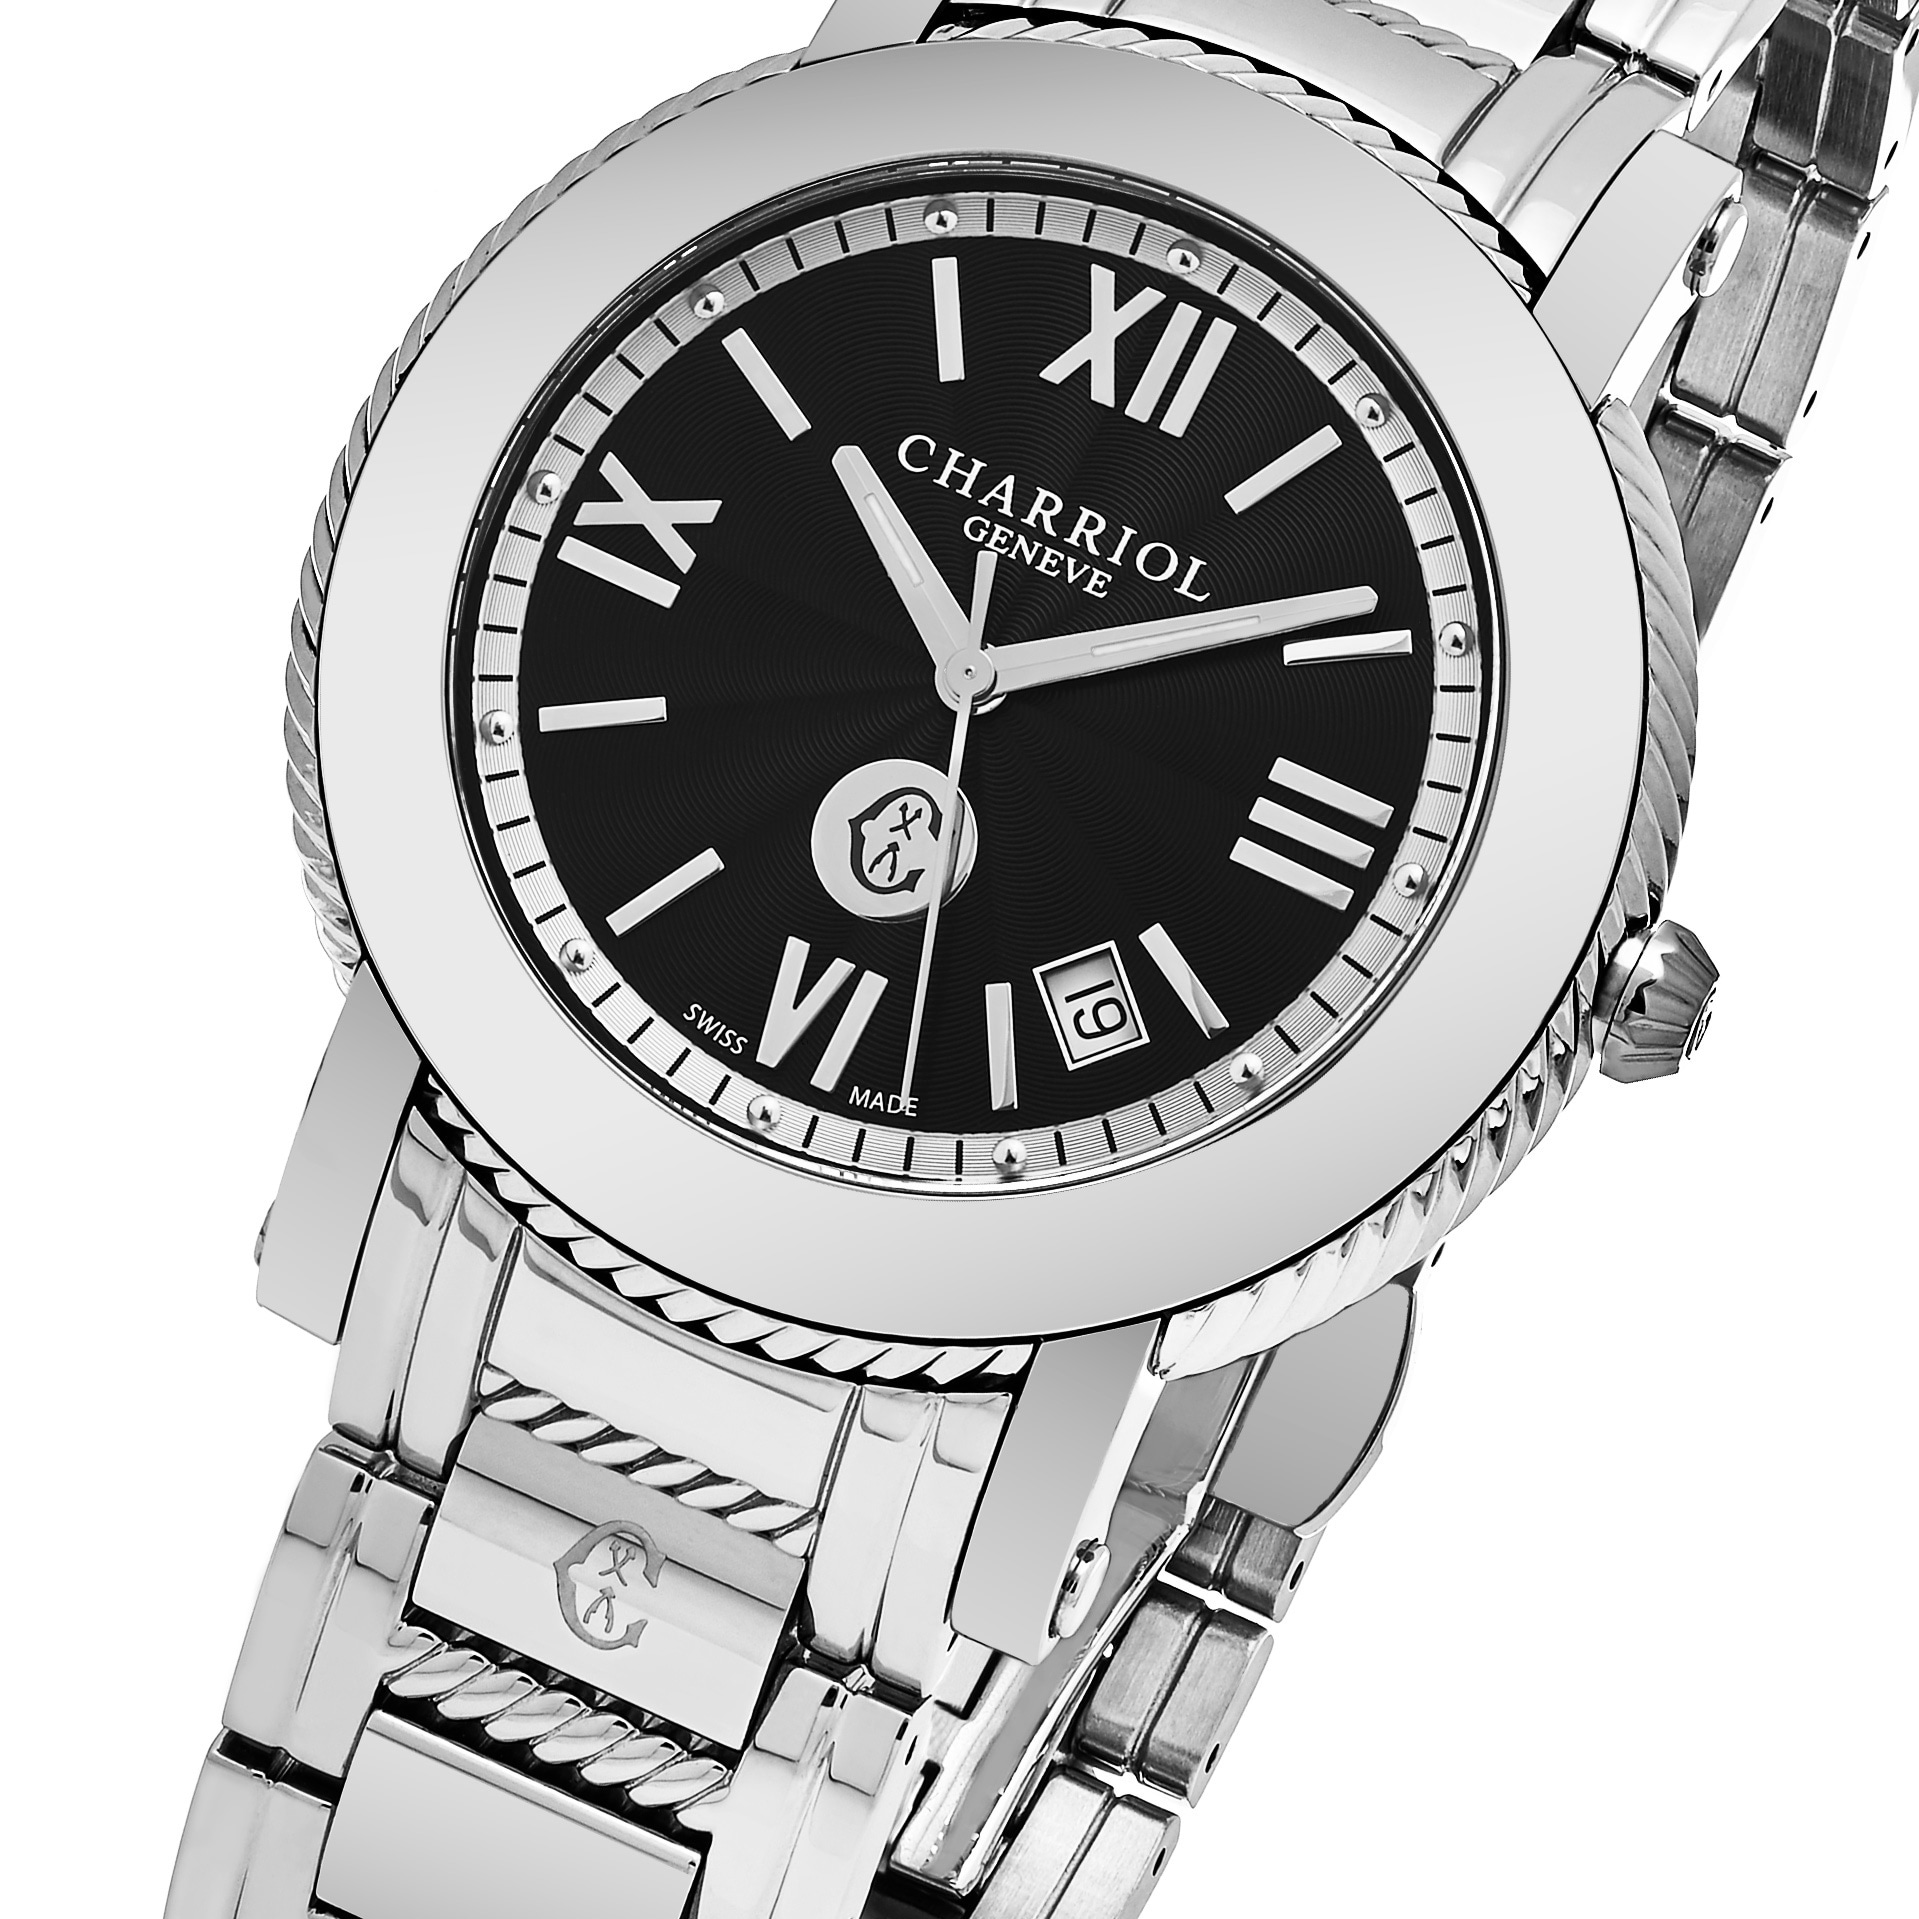 37a9884a7ec Shop Charriol Men s  Parisi  Black Dial Stainless Steel Swiss Quartz Watch  - Free Shipping Today - Overstock - 14002017